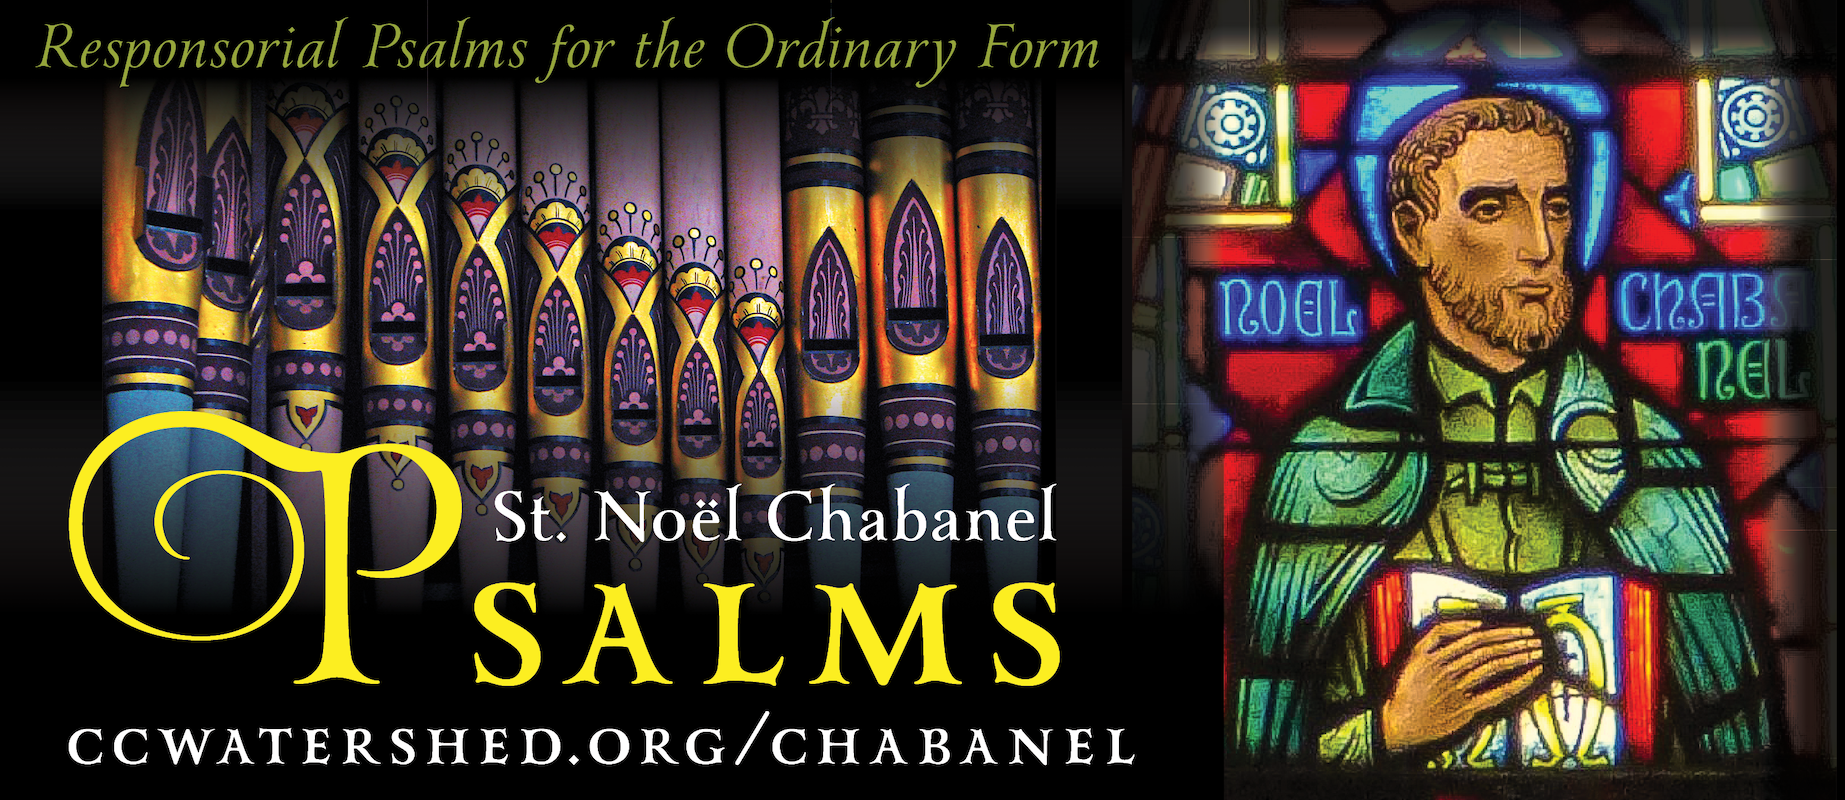 St. Noël Chabanel Responsorial Psalms